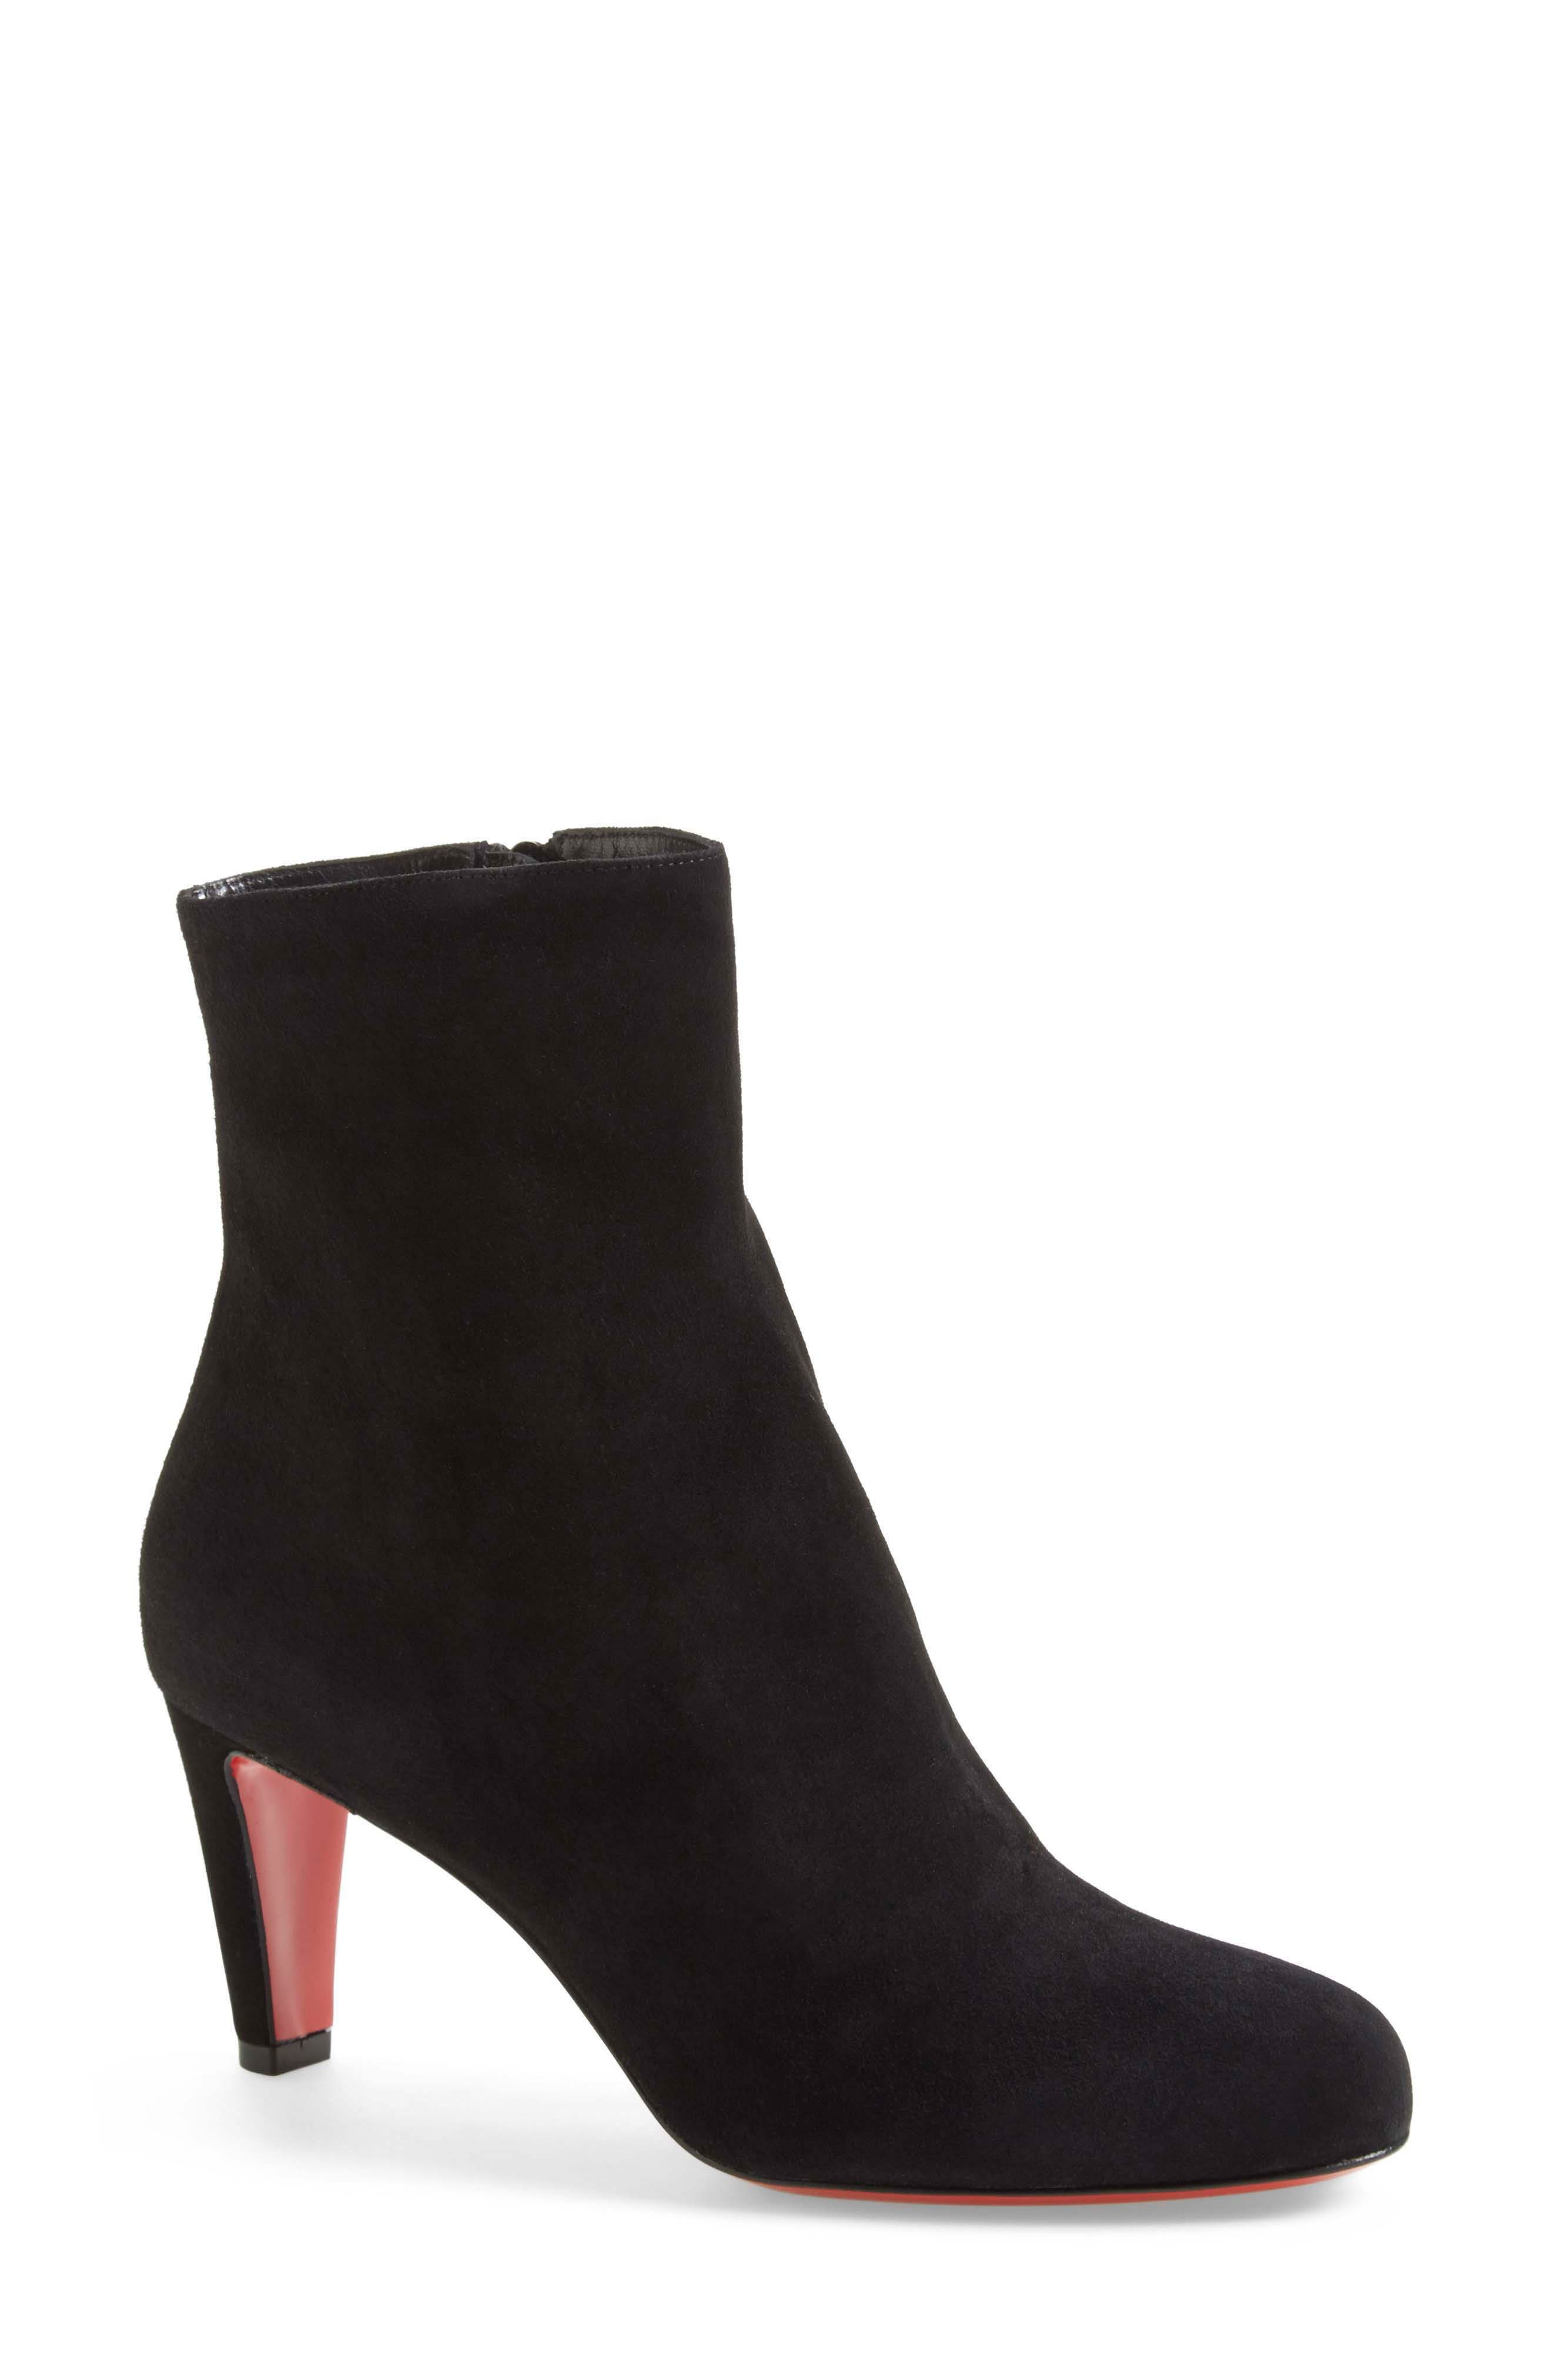 'Top' Ankle Bootie,                         Main,                         color, 001